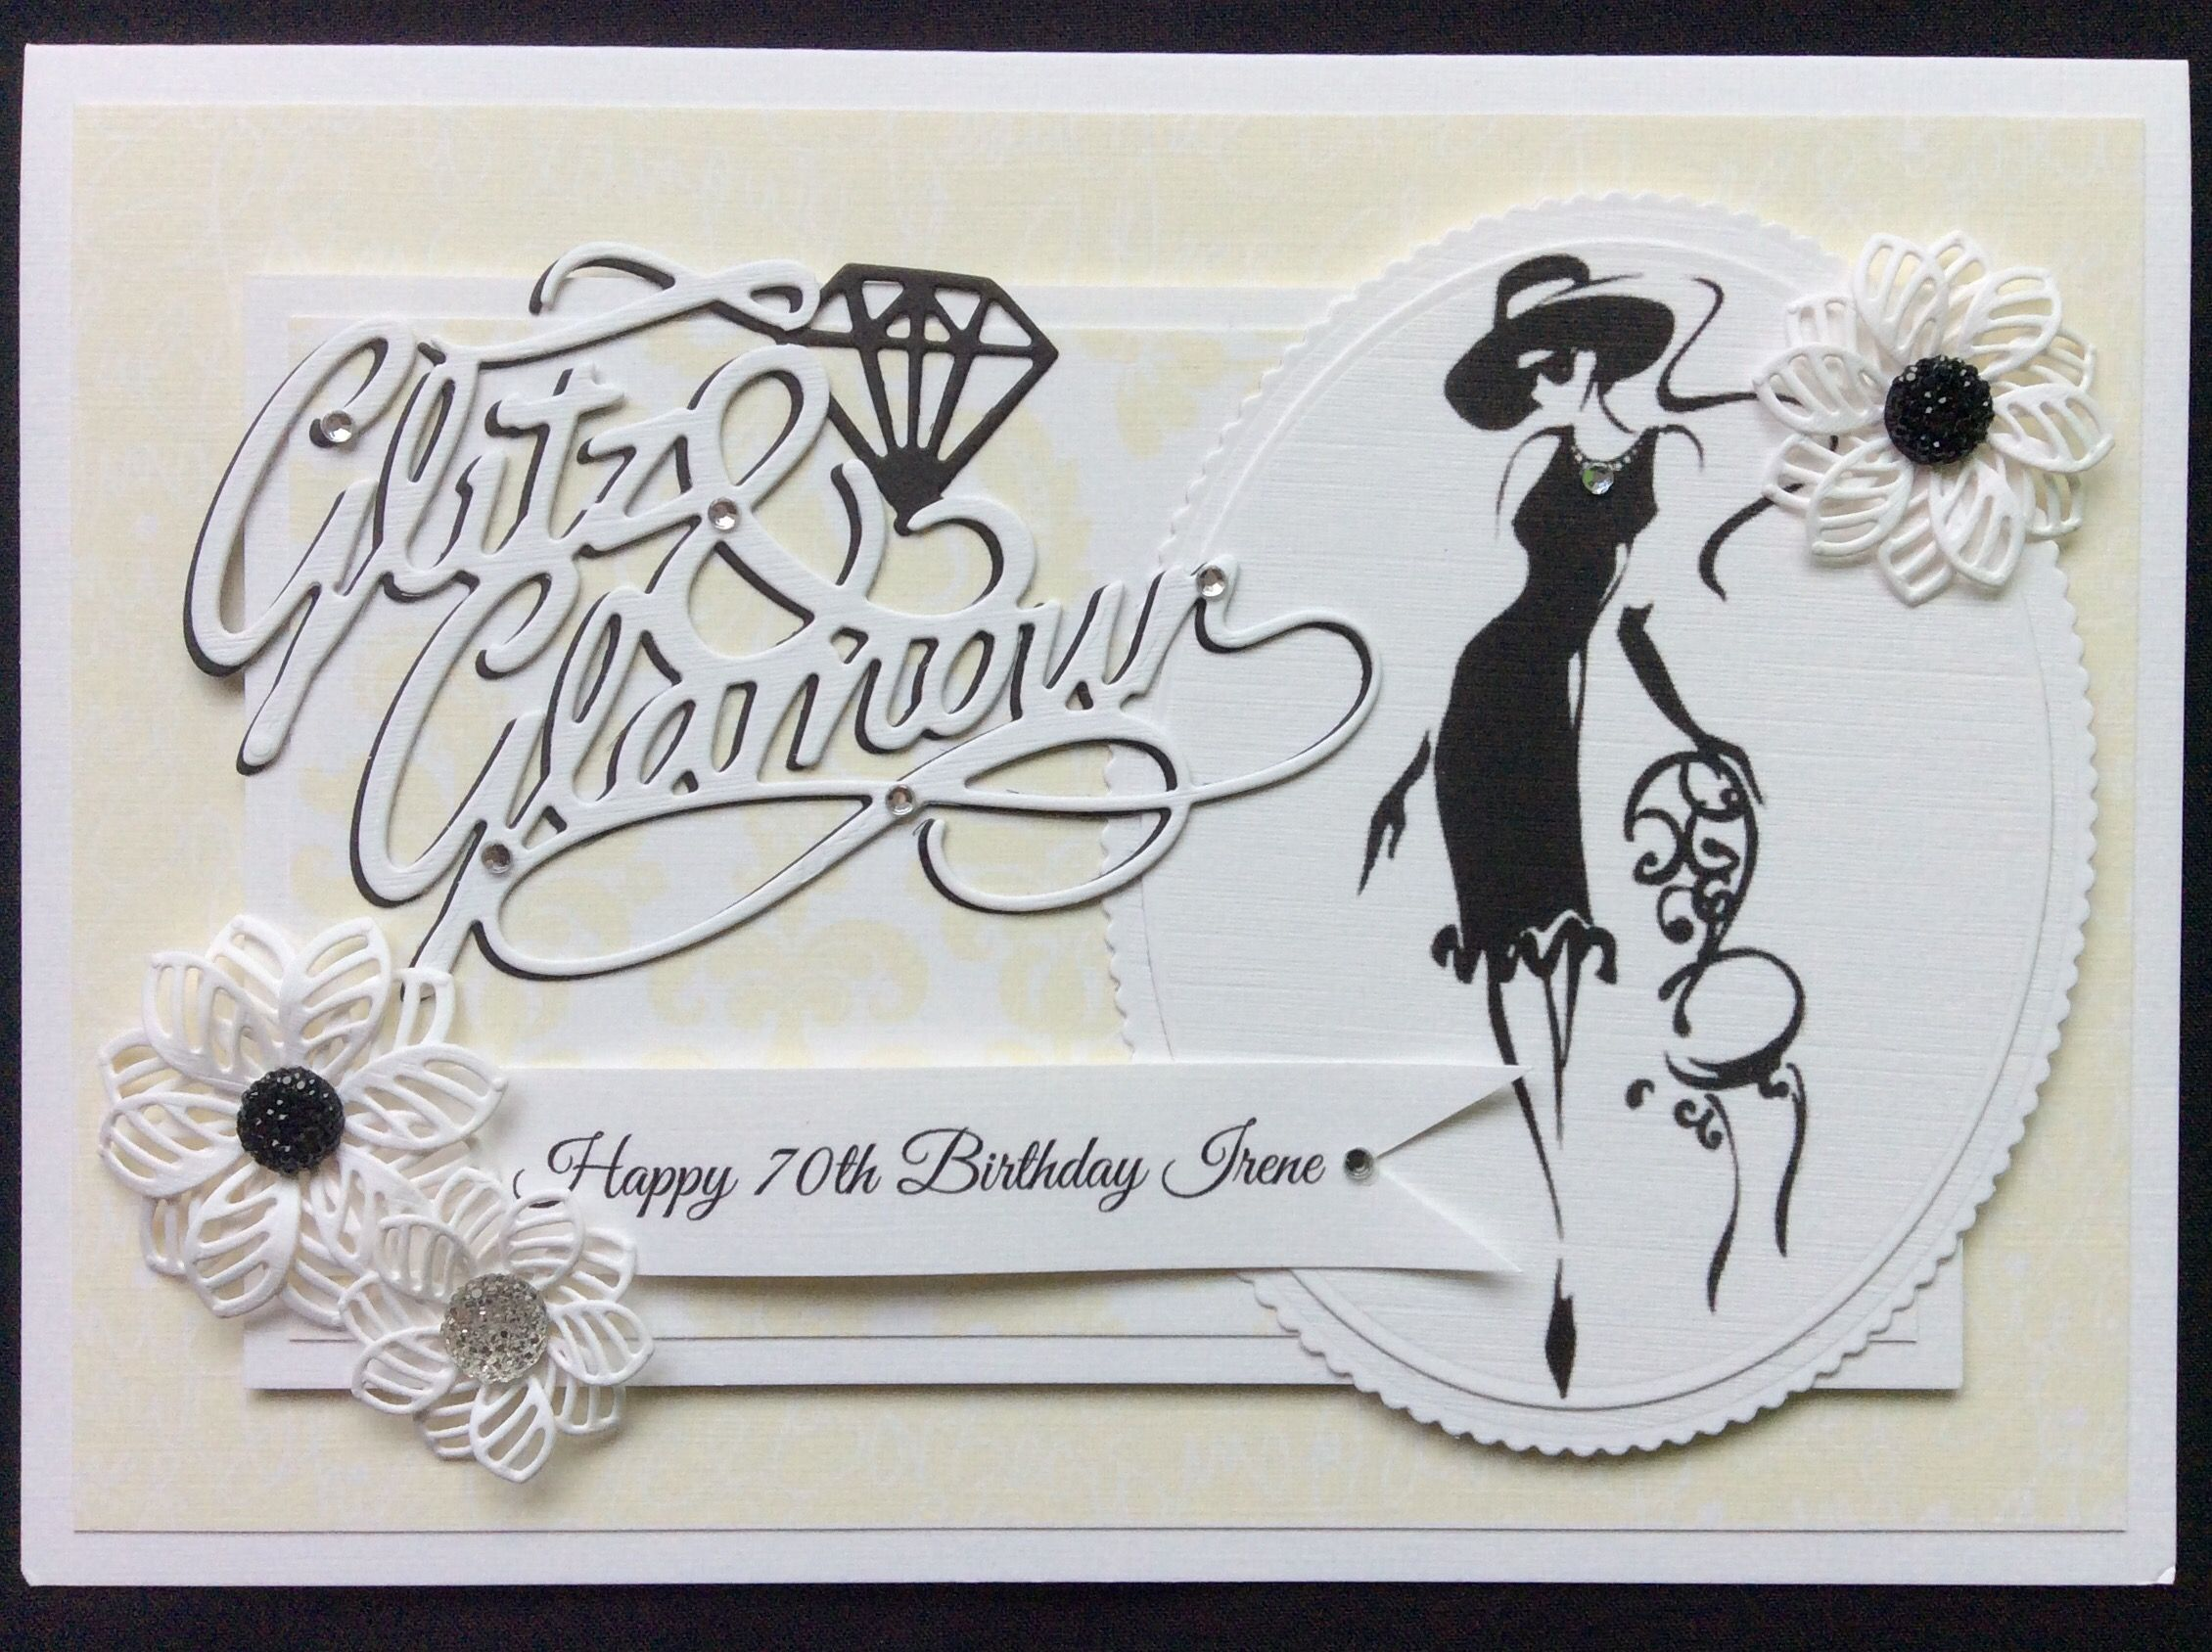 Order Code 021703 A Bit Of Glitz And Glamour For This 70th Birthday